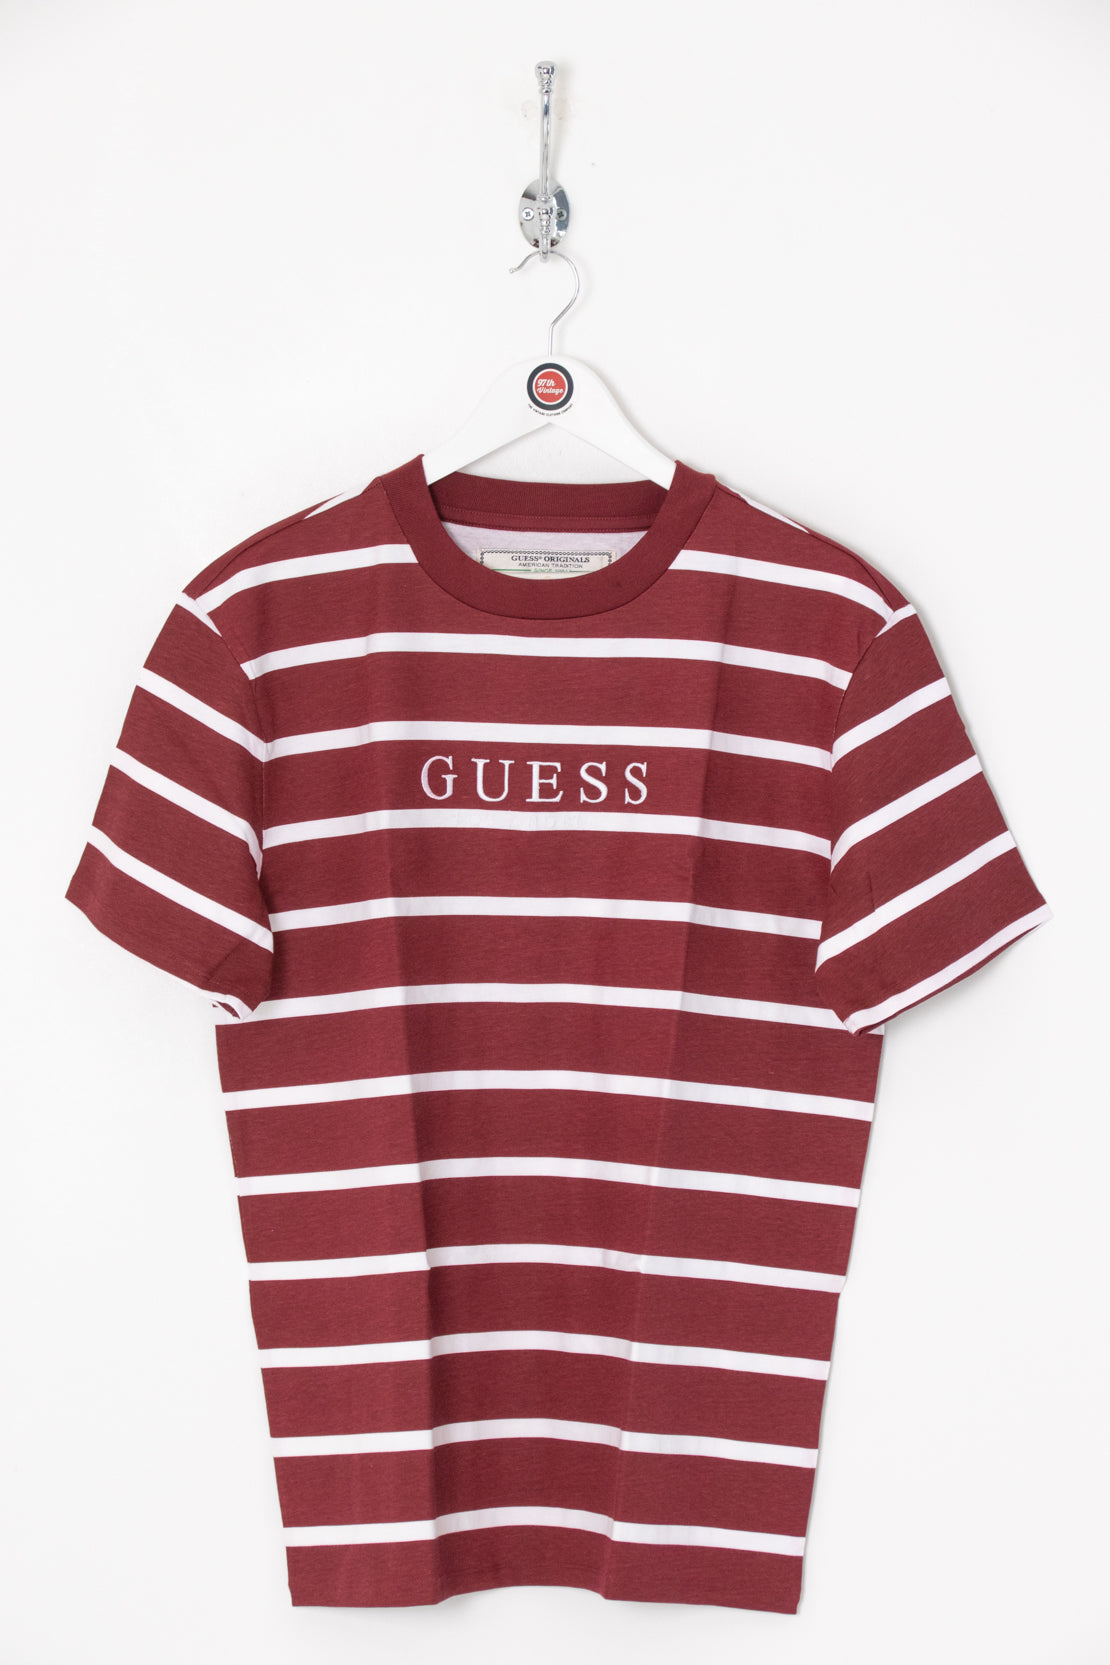 Guess T-Shirt (XL)